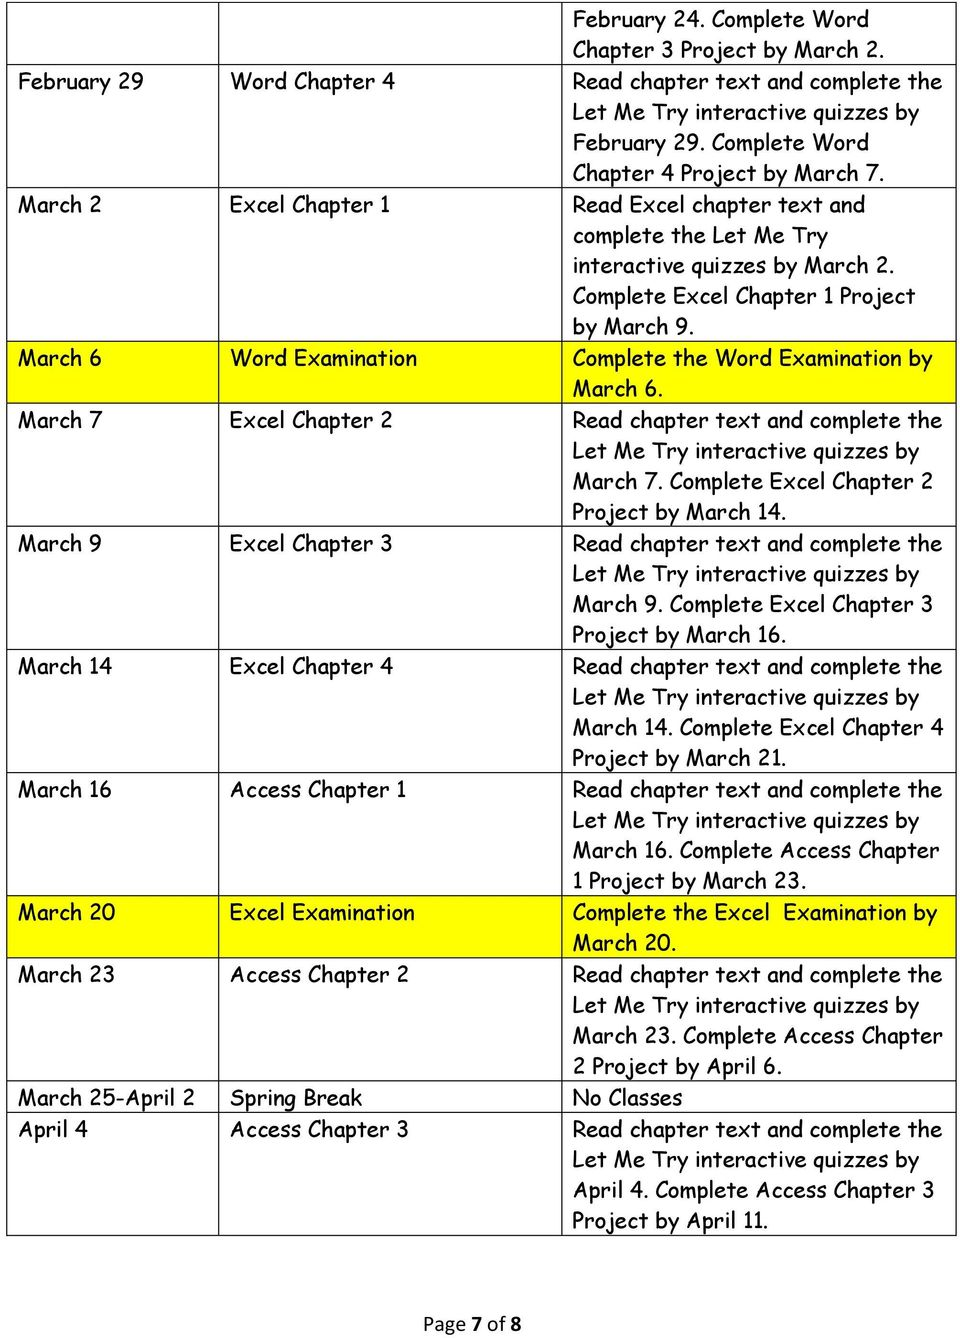 March 6 Word Examination Complete the Word Examination by March 6. March 7 Excel Chapter 2 Read chapter text and complete the March 7. Complete Excel Chapter 2 Project by March 14.